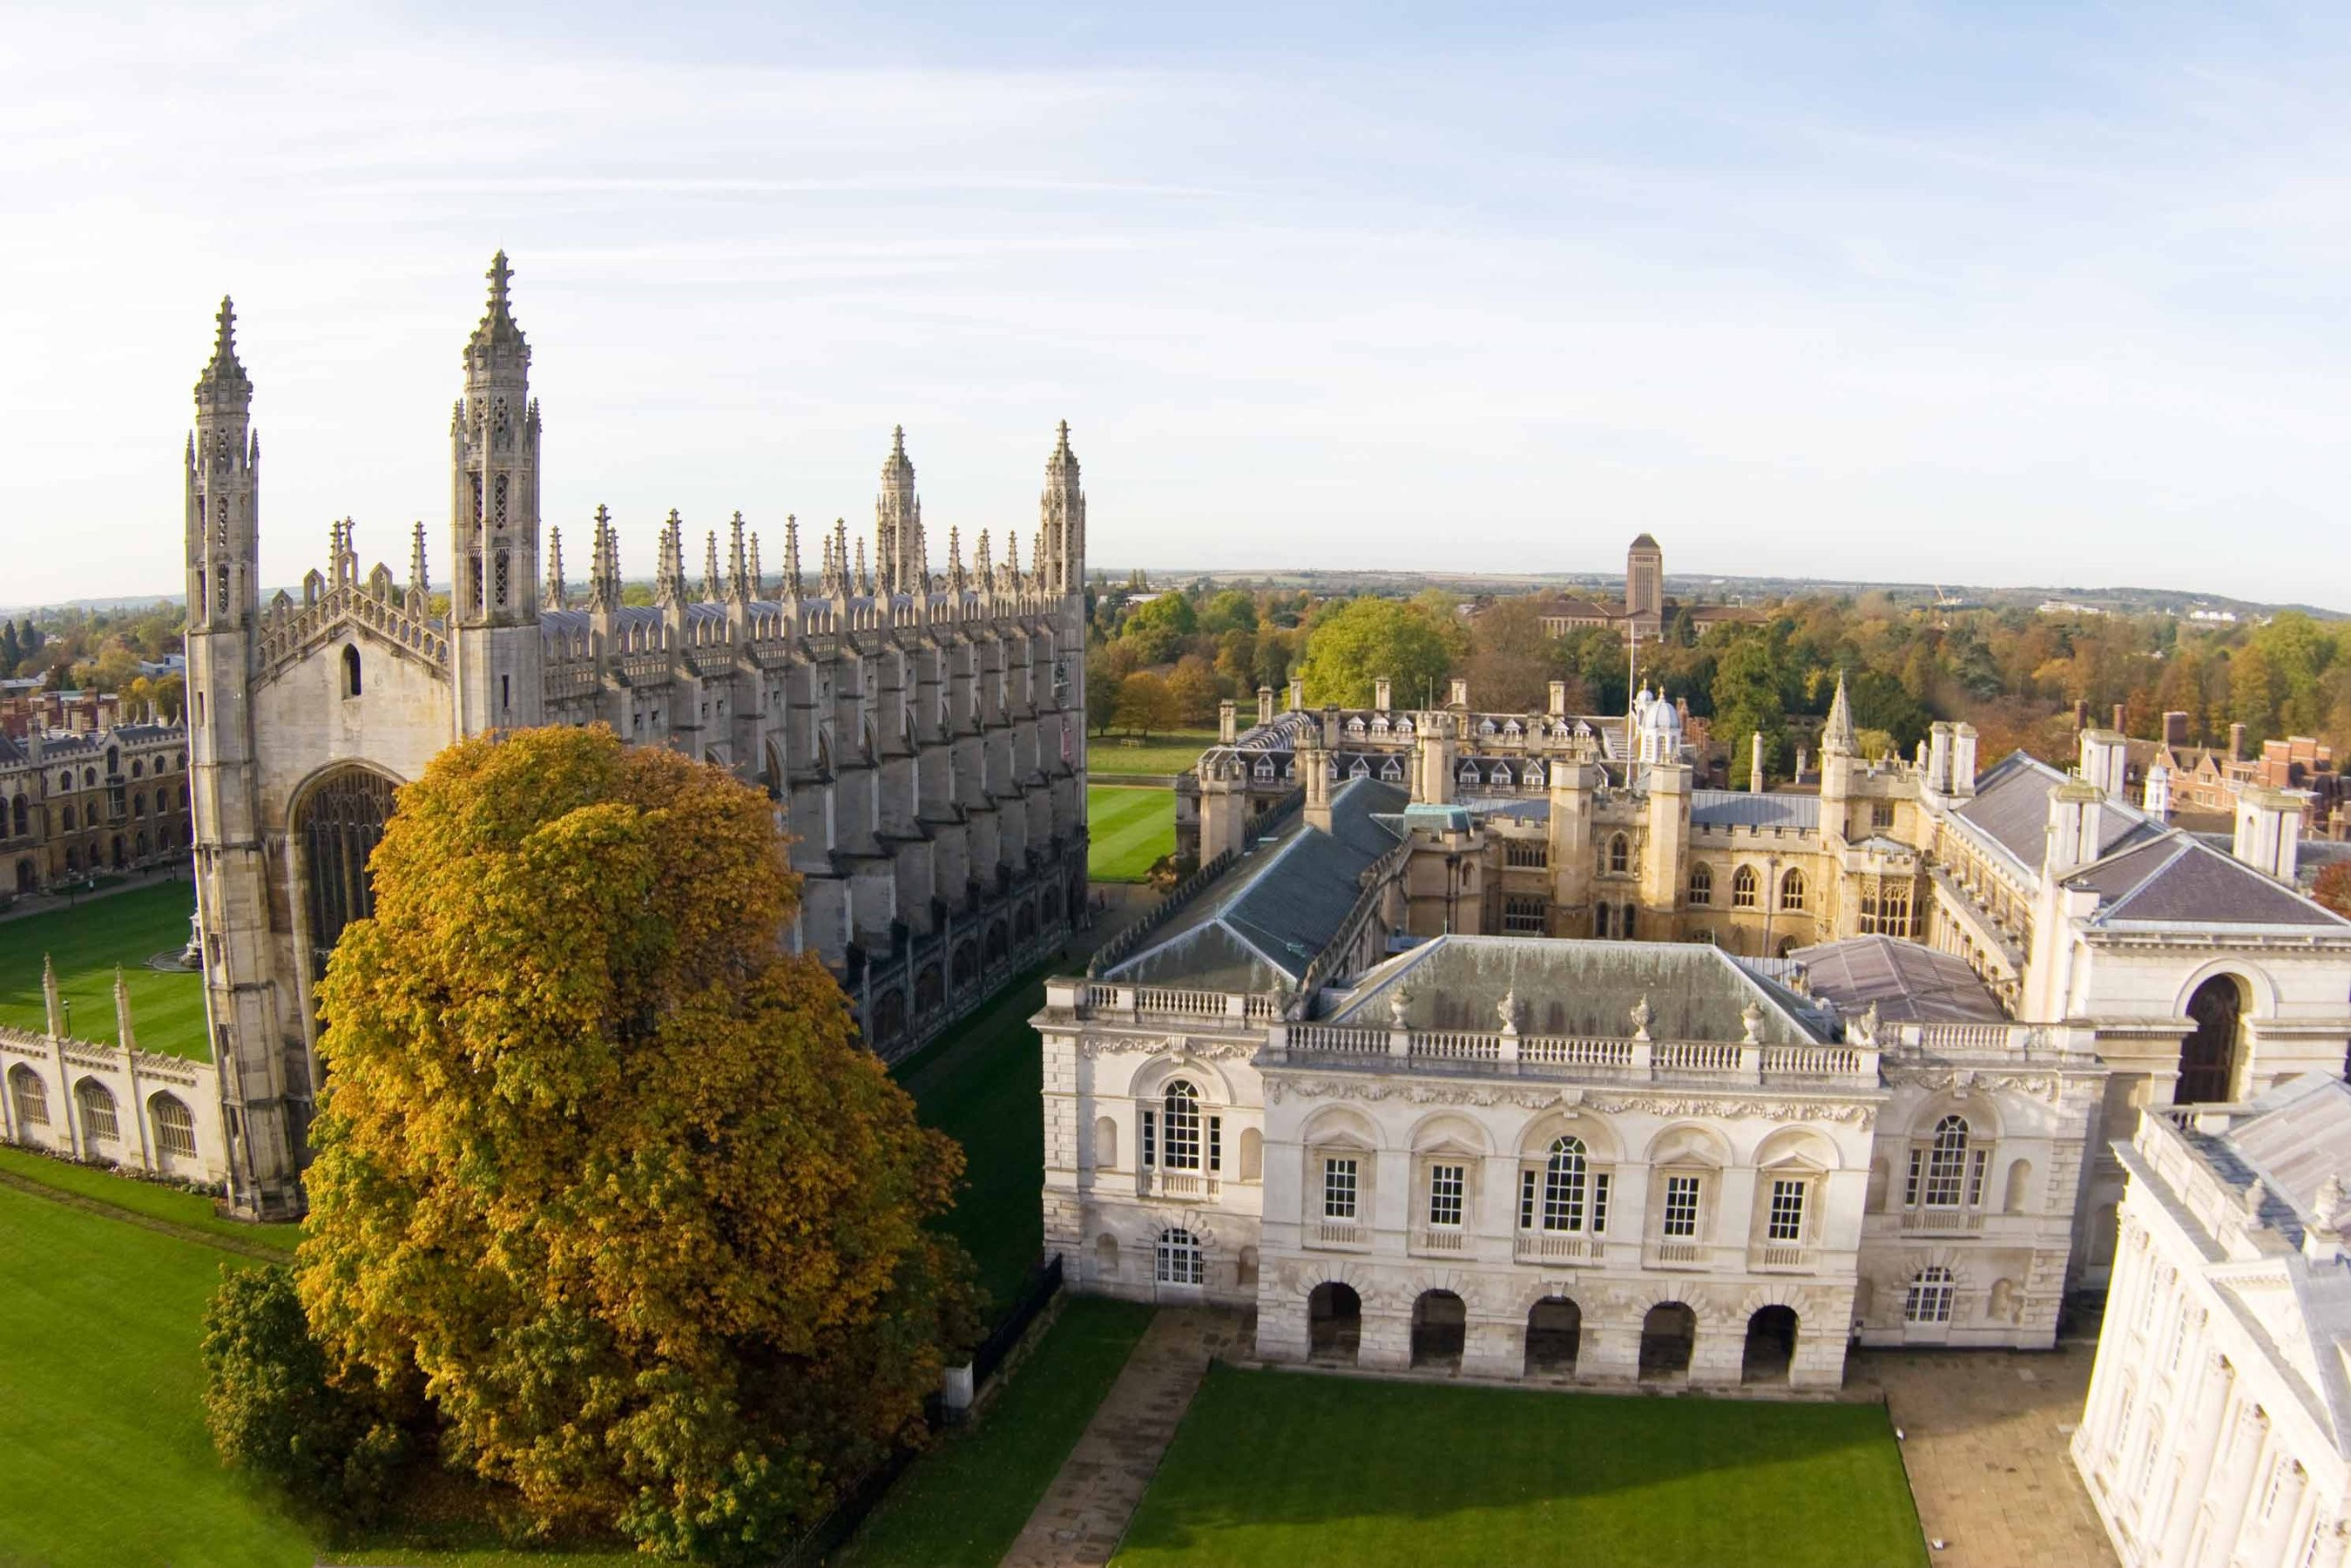 An aerial view of Gibbs Building and King's College Chapel at Cambridge University